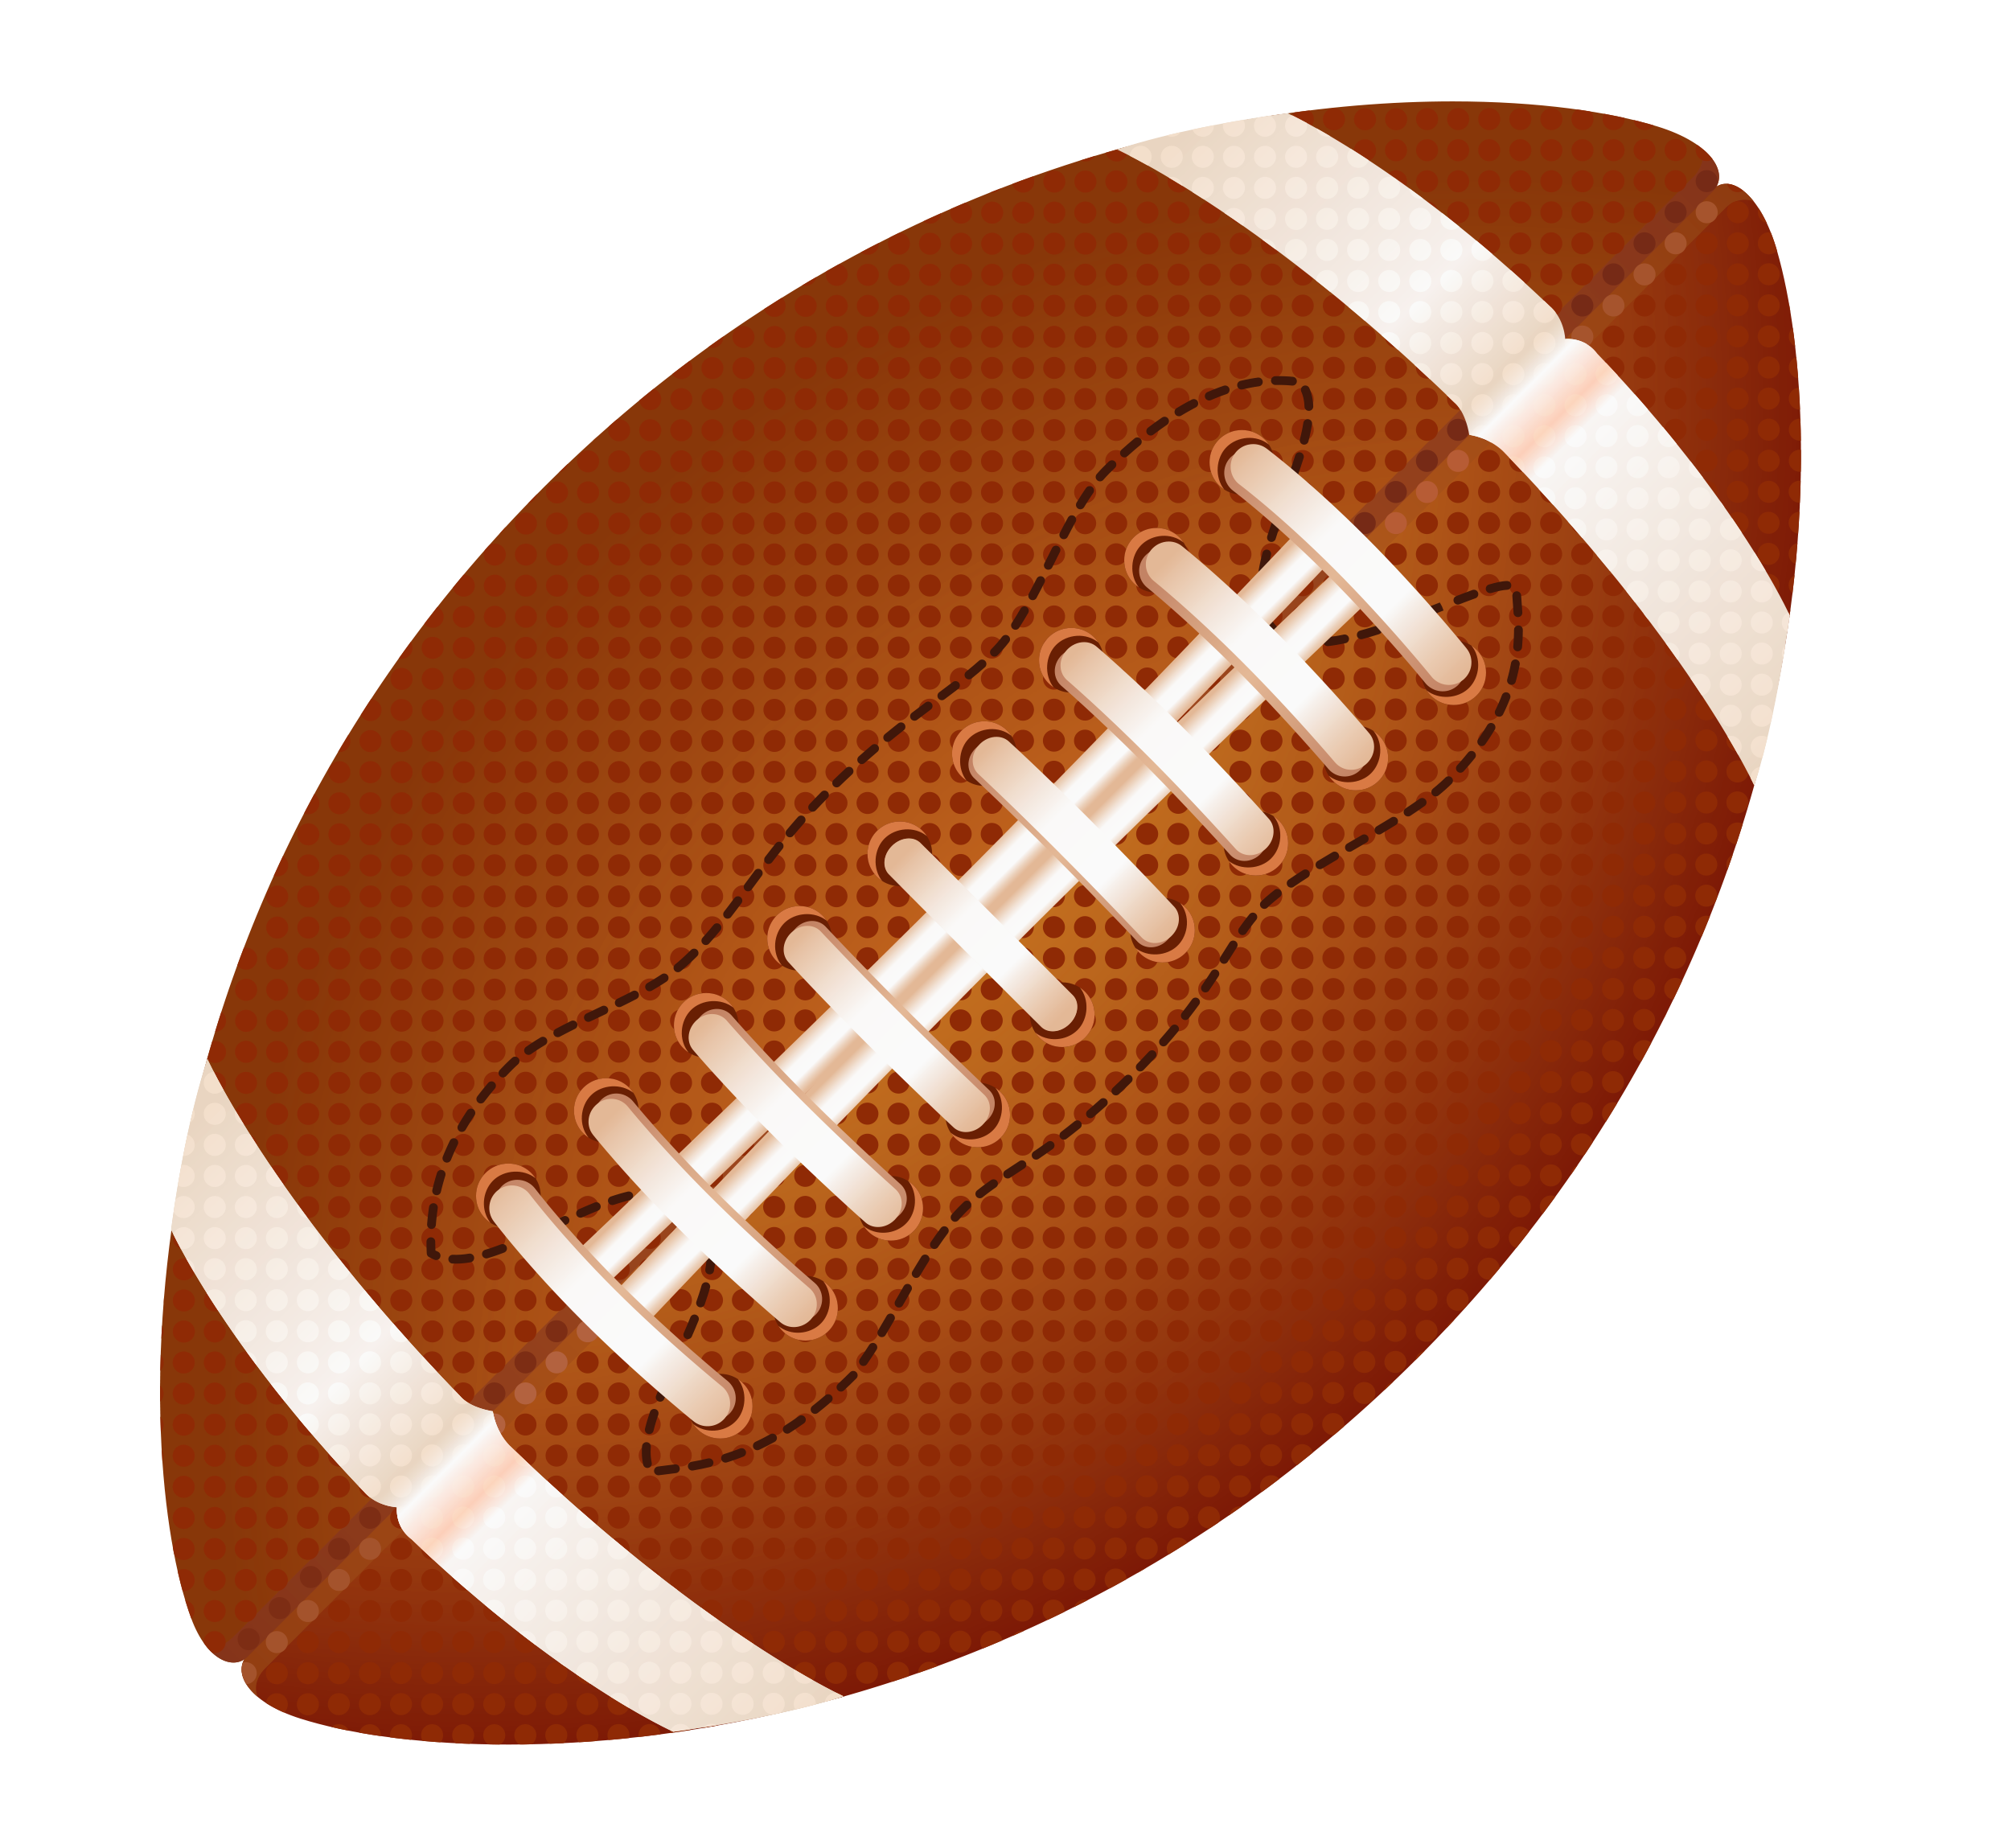 Hawk football clipart free stock Football Clipart to Download - dbclipart.com | School | Pinterest ... free stock